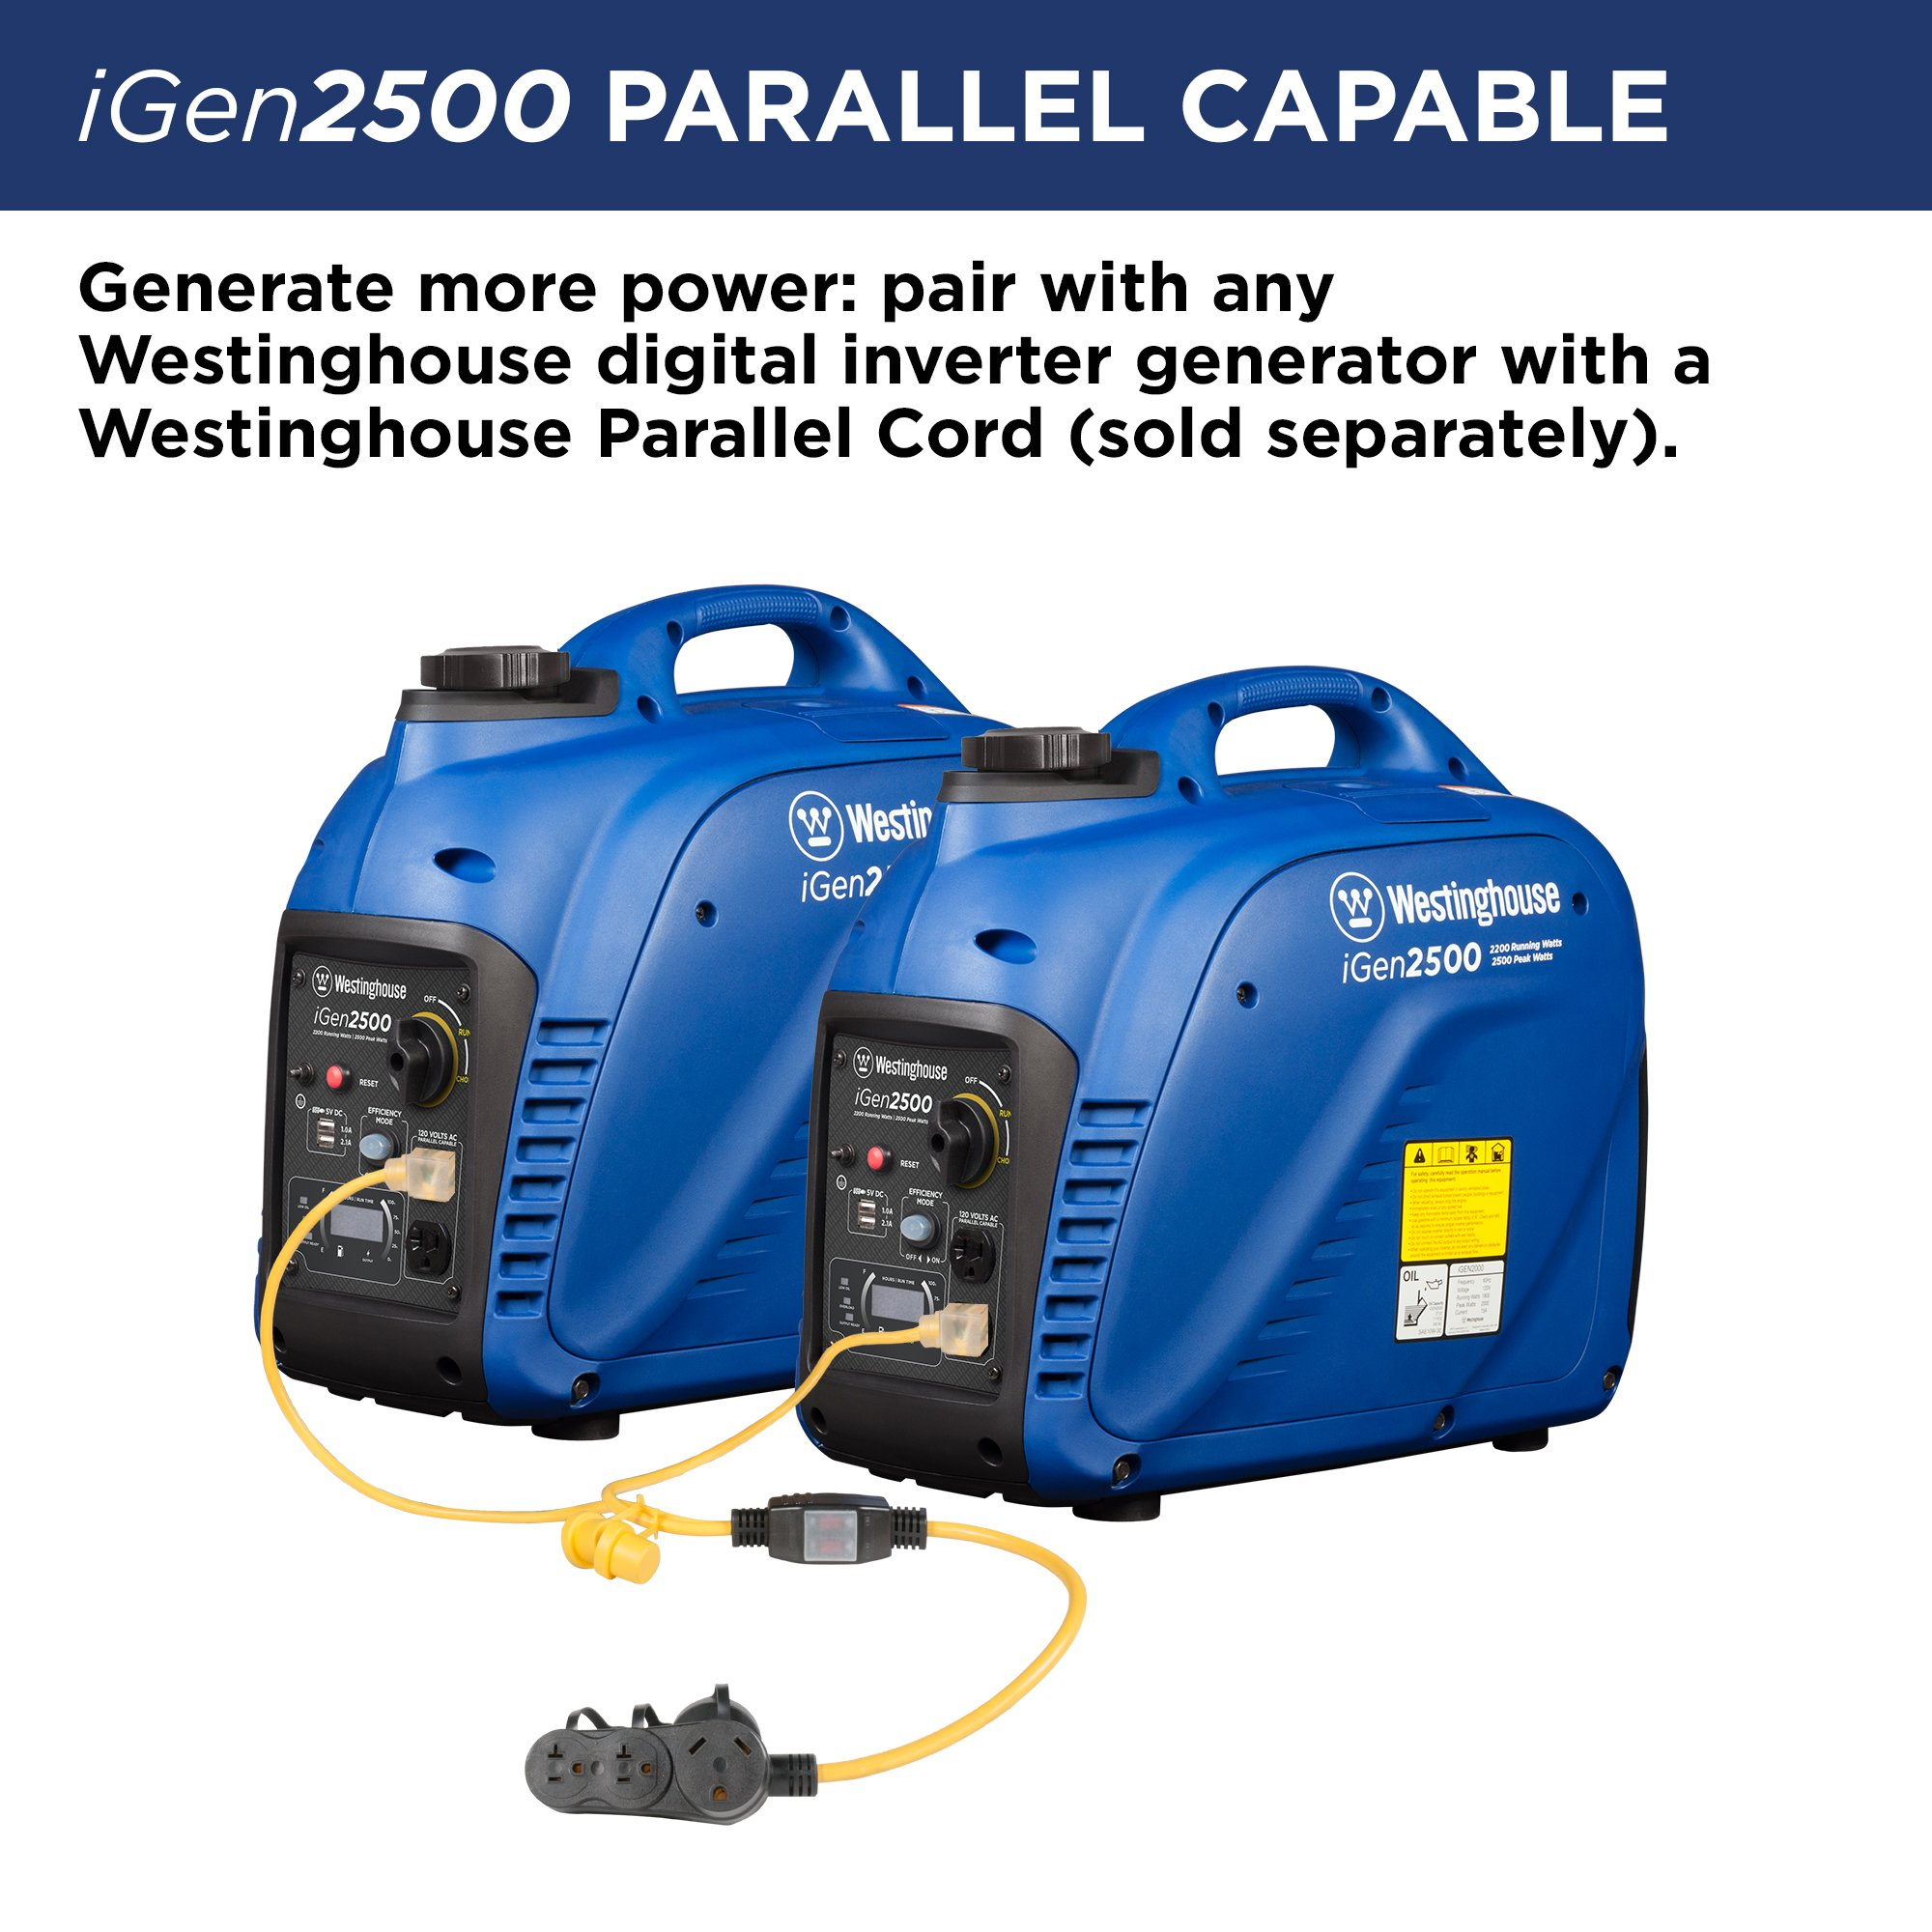 Westinghouse iGen2500 Portable Inverter Generator - 2200 Rated Watts & 2500 Peak Watts - Gas Powered - CARB Compliant by Westinghouse (Image #6)